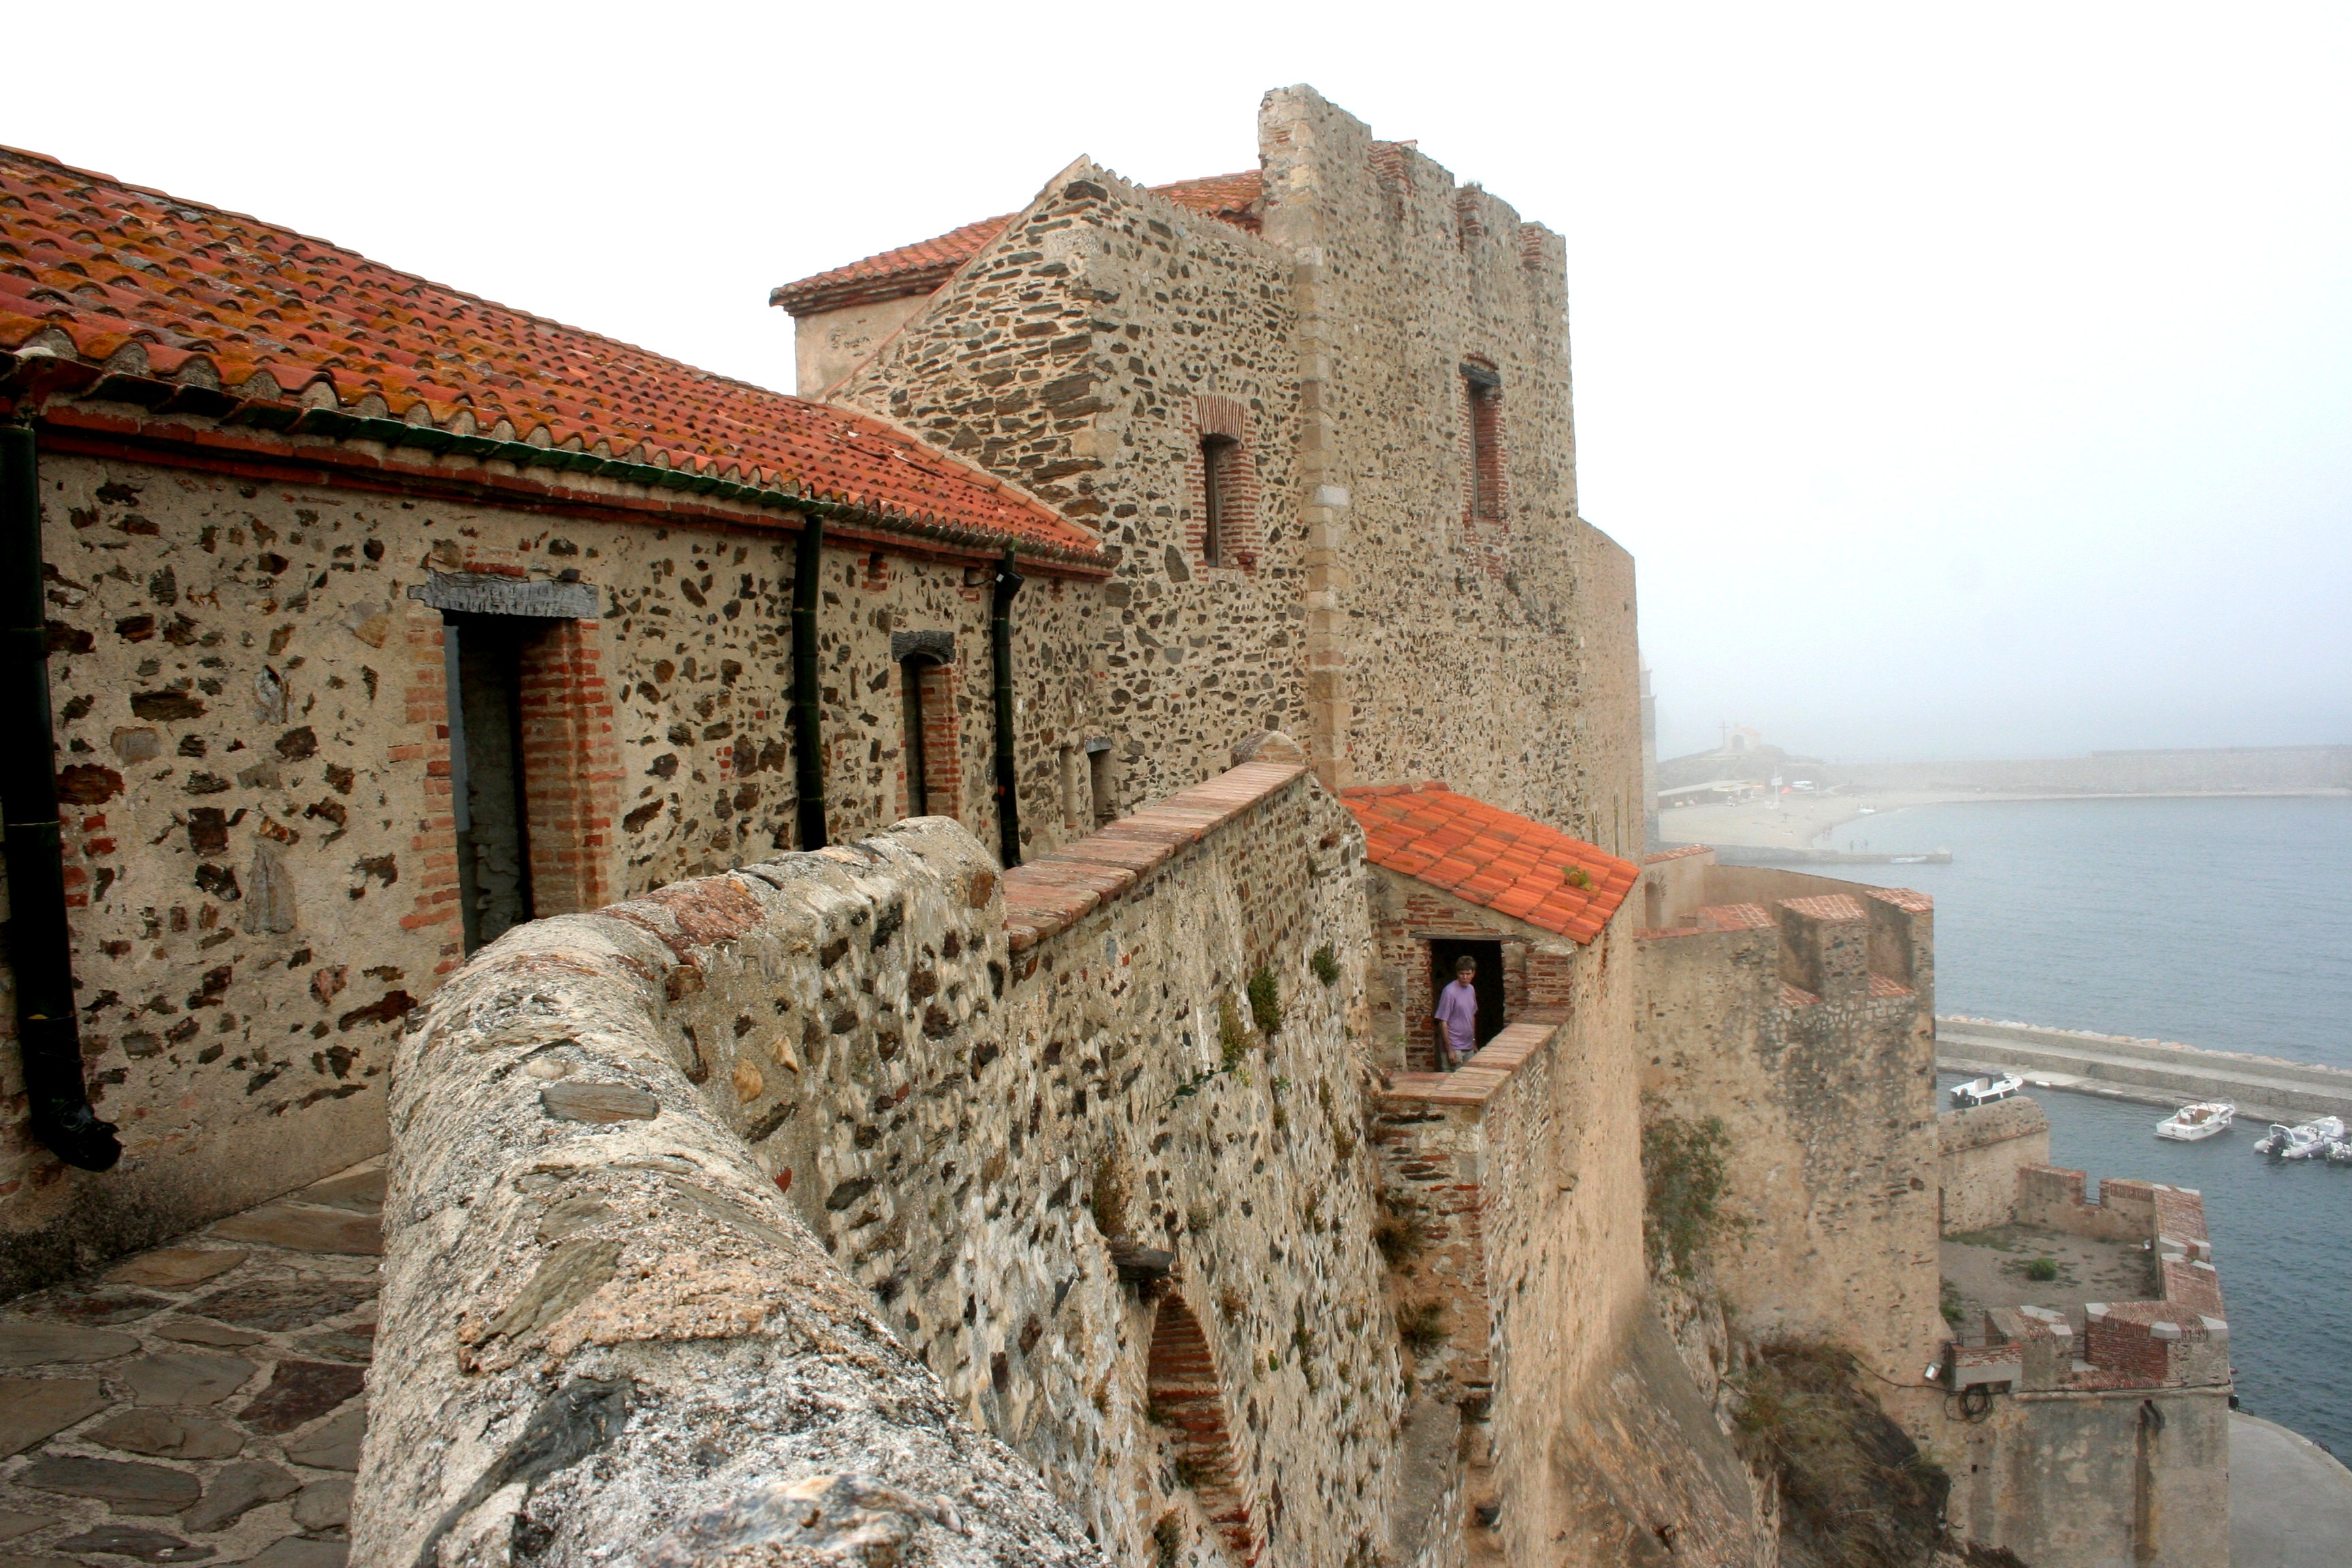 Knights Templar Fortress